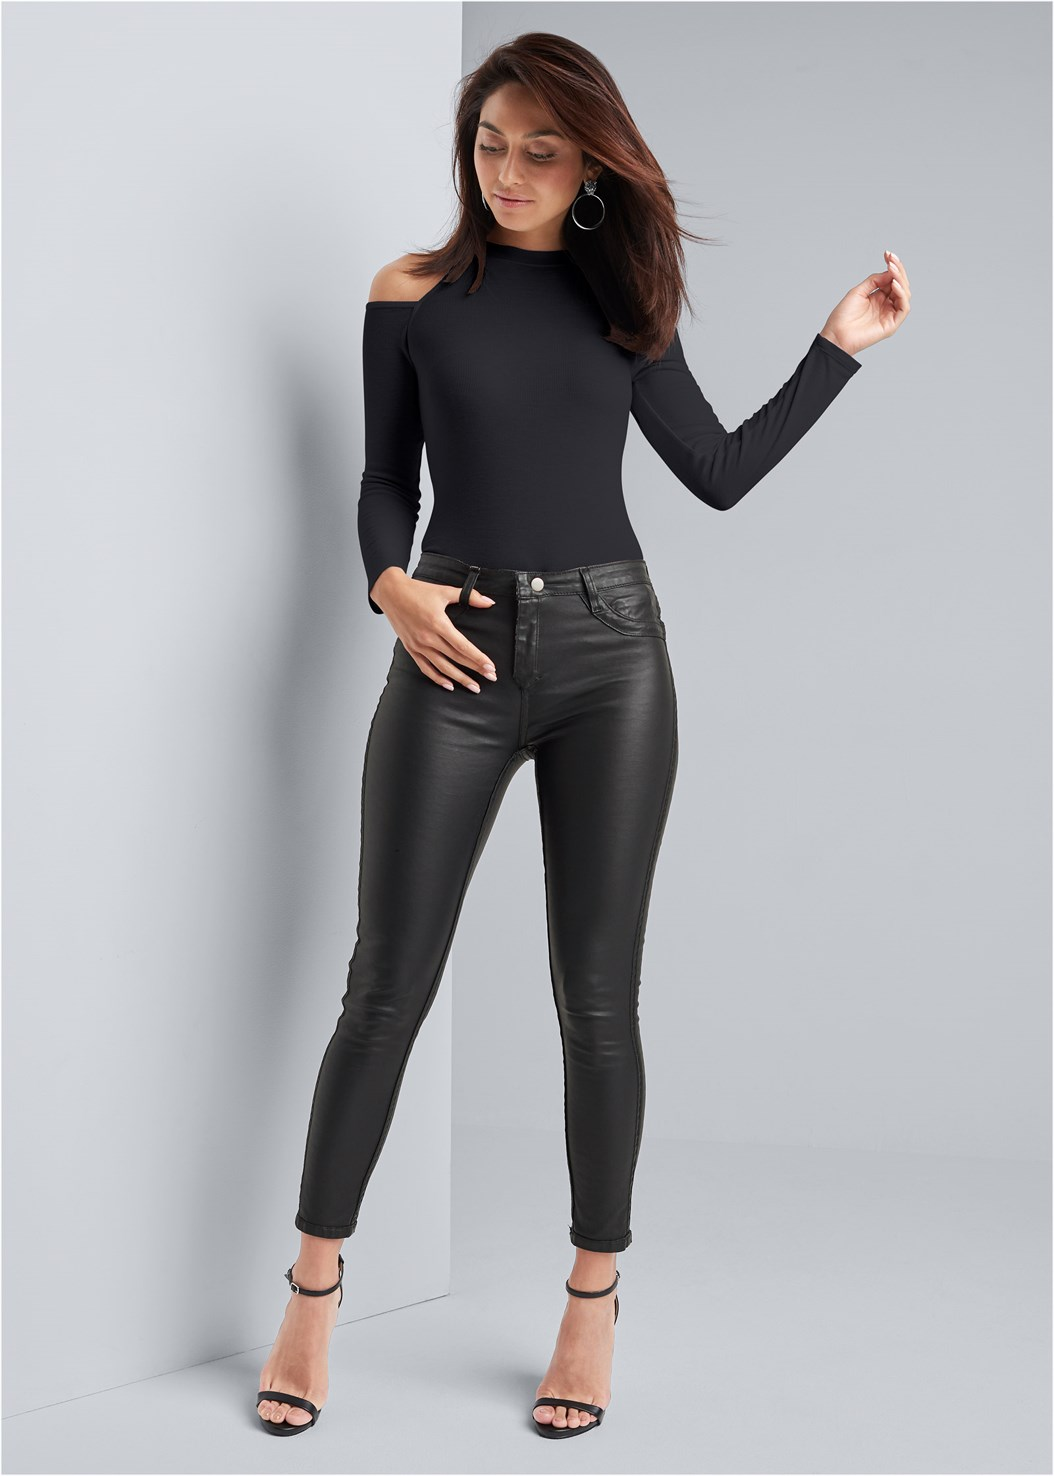 Reversible Faux Leather Skinny Jeans,Ribbed Long Sleeve Top,Kissable Convertible Bra,Ankle Strap Heels